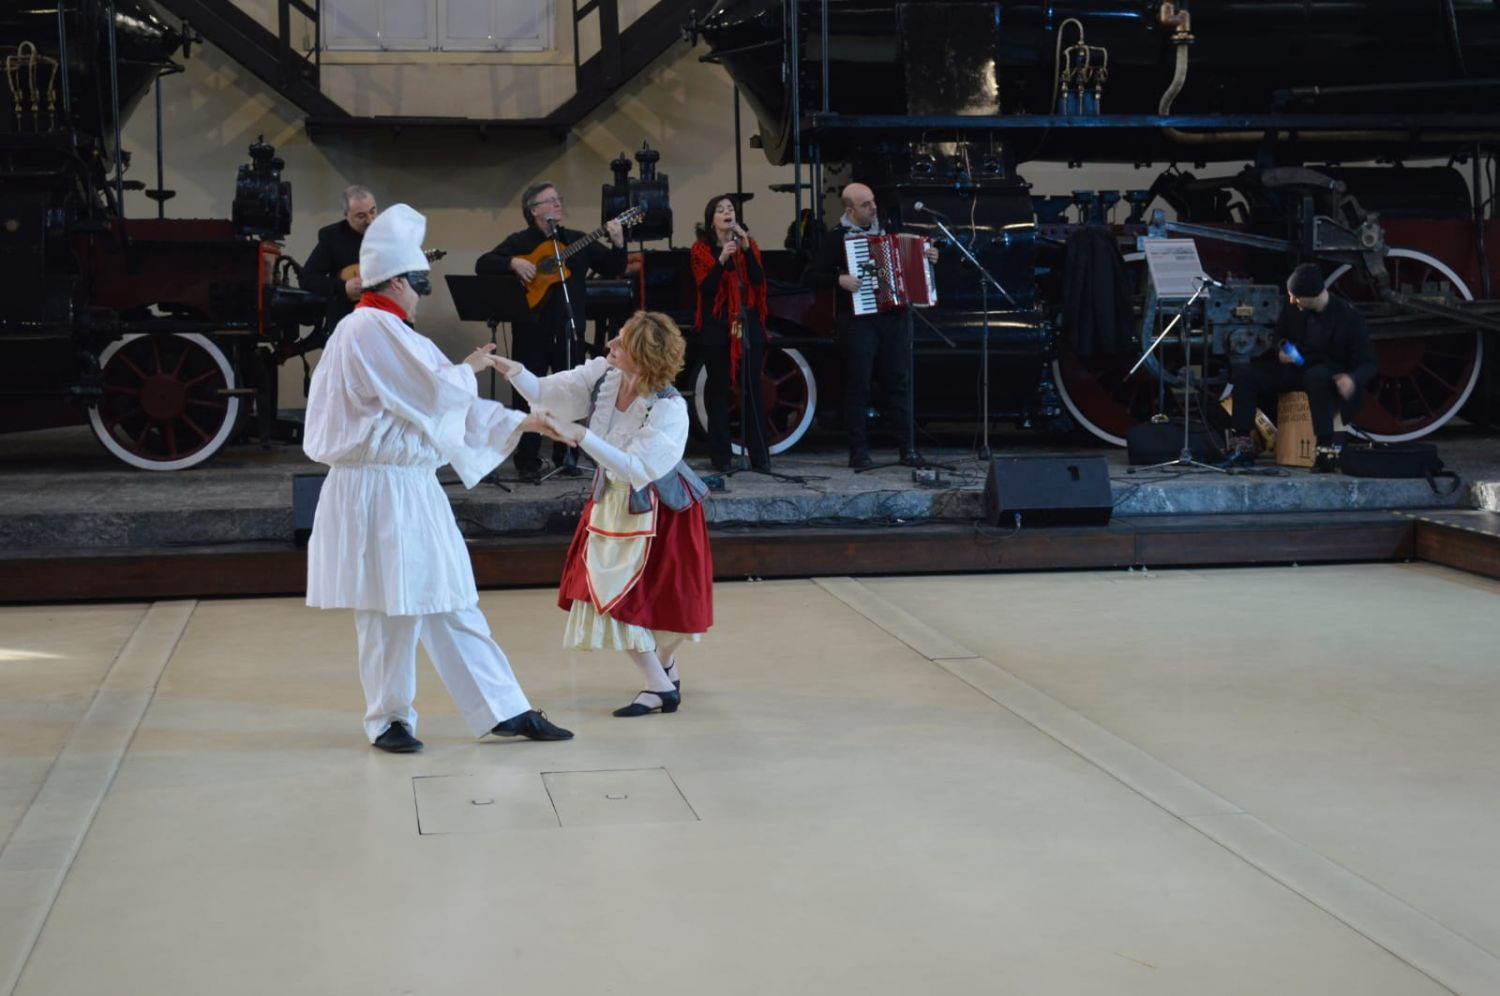 Naples Tour: Dance the Neapolitan Tarantella